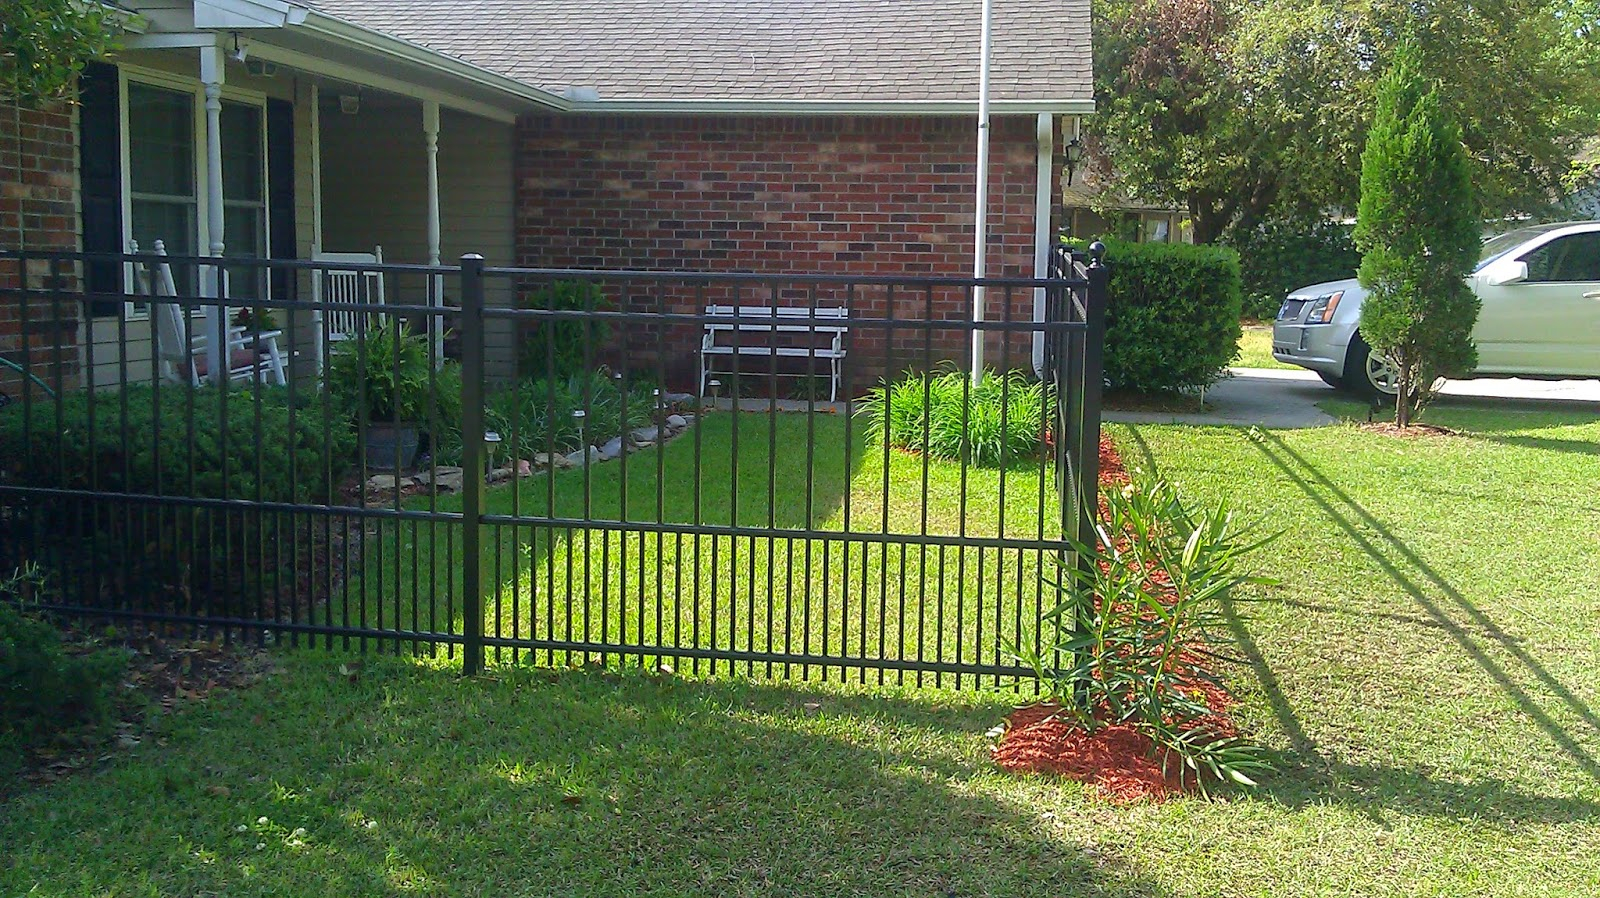 Town Country Fences Llc Save The View Contain The Dog With intended for size 1600 X 898